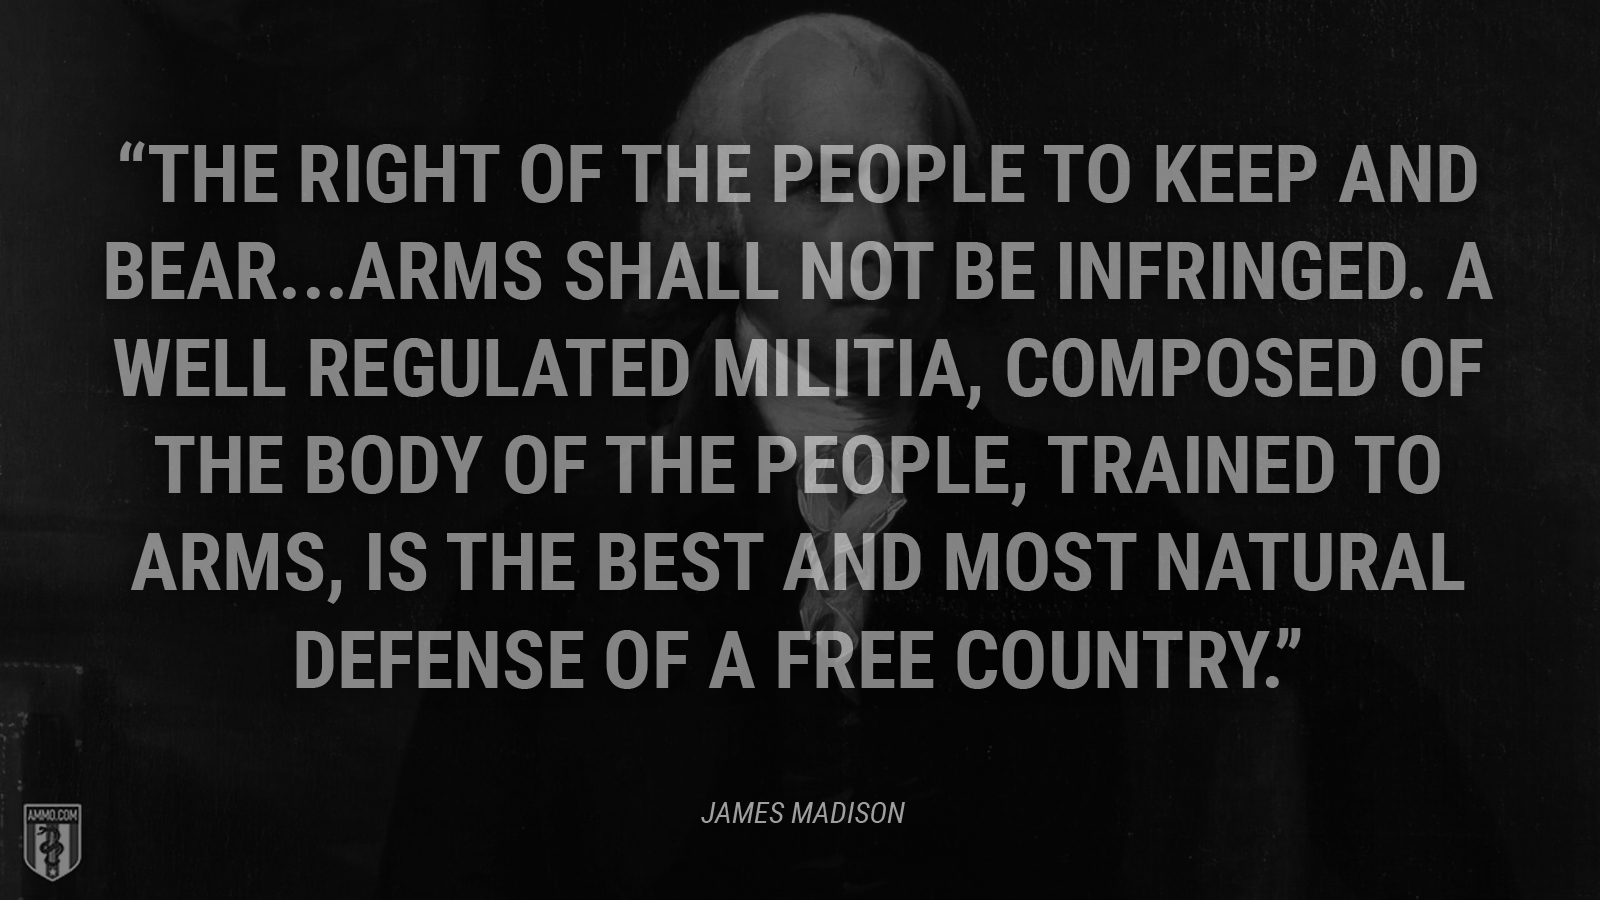 """The right of the people to keep and bear...arms shall not be infringed. A well regulated militia, composed of the body of the people, trained to arms, is the best and most natural defense of a free country."" - James Madison"